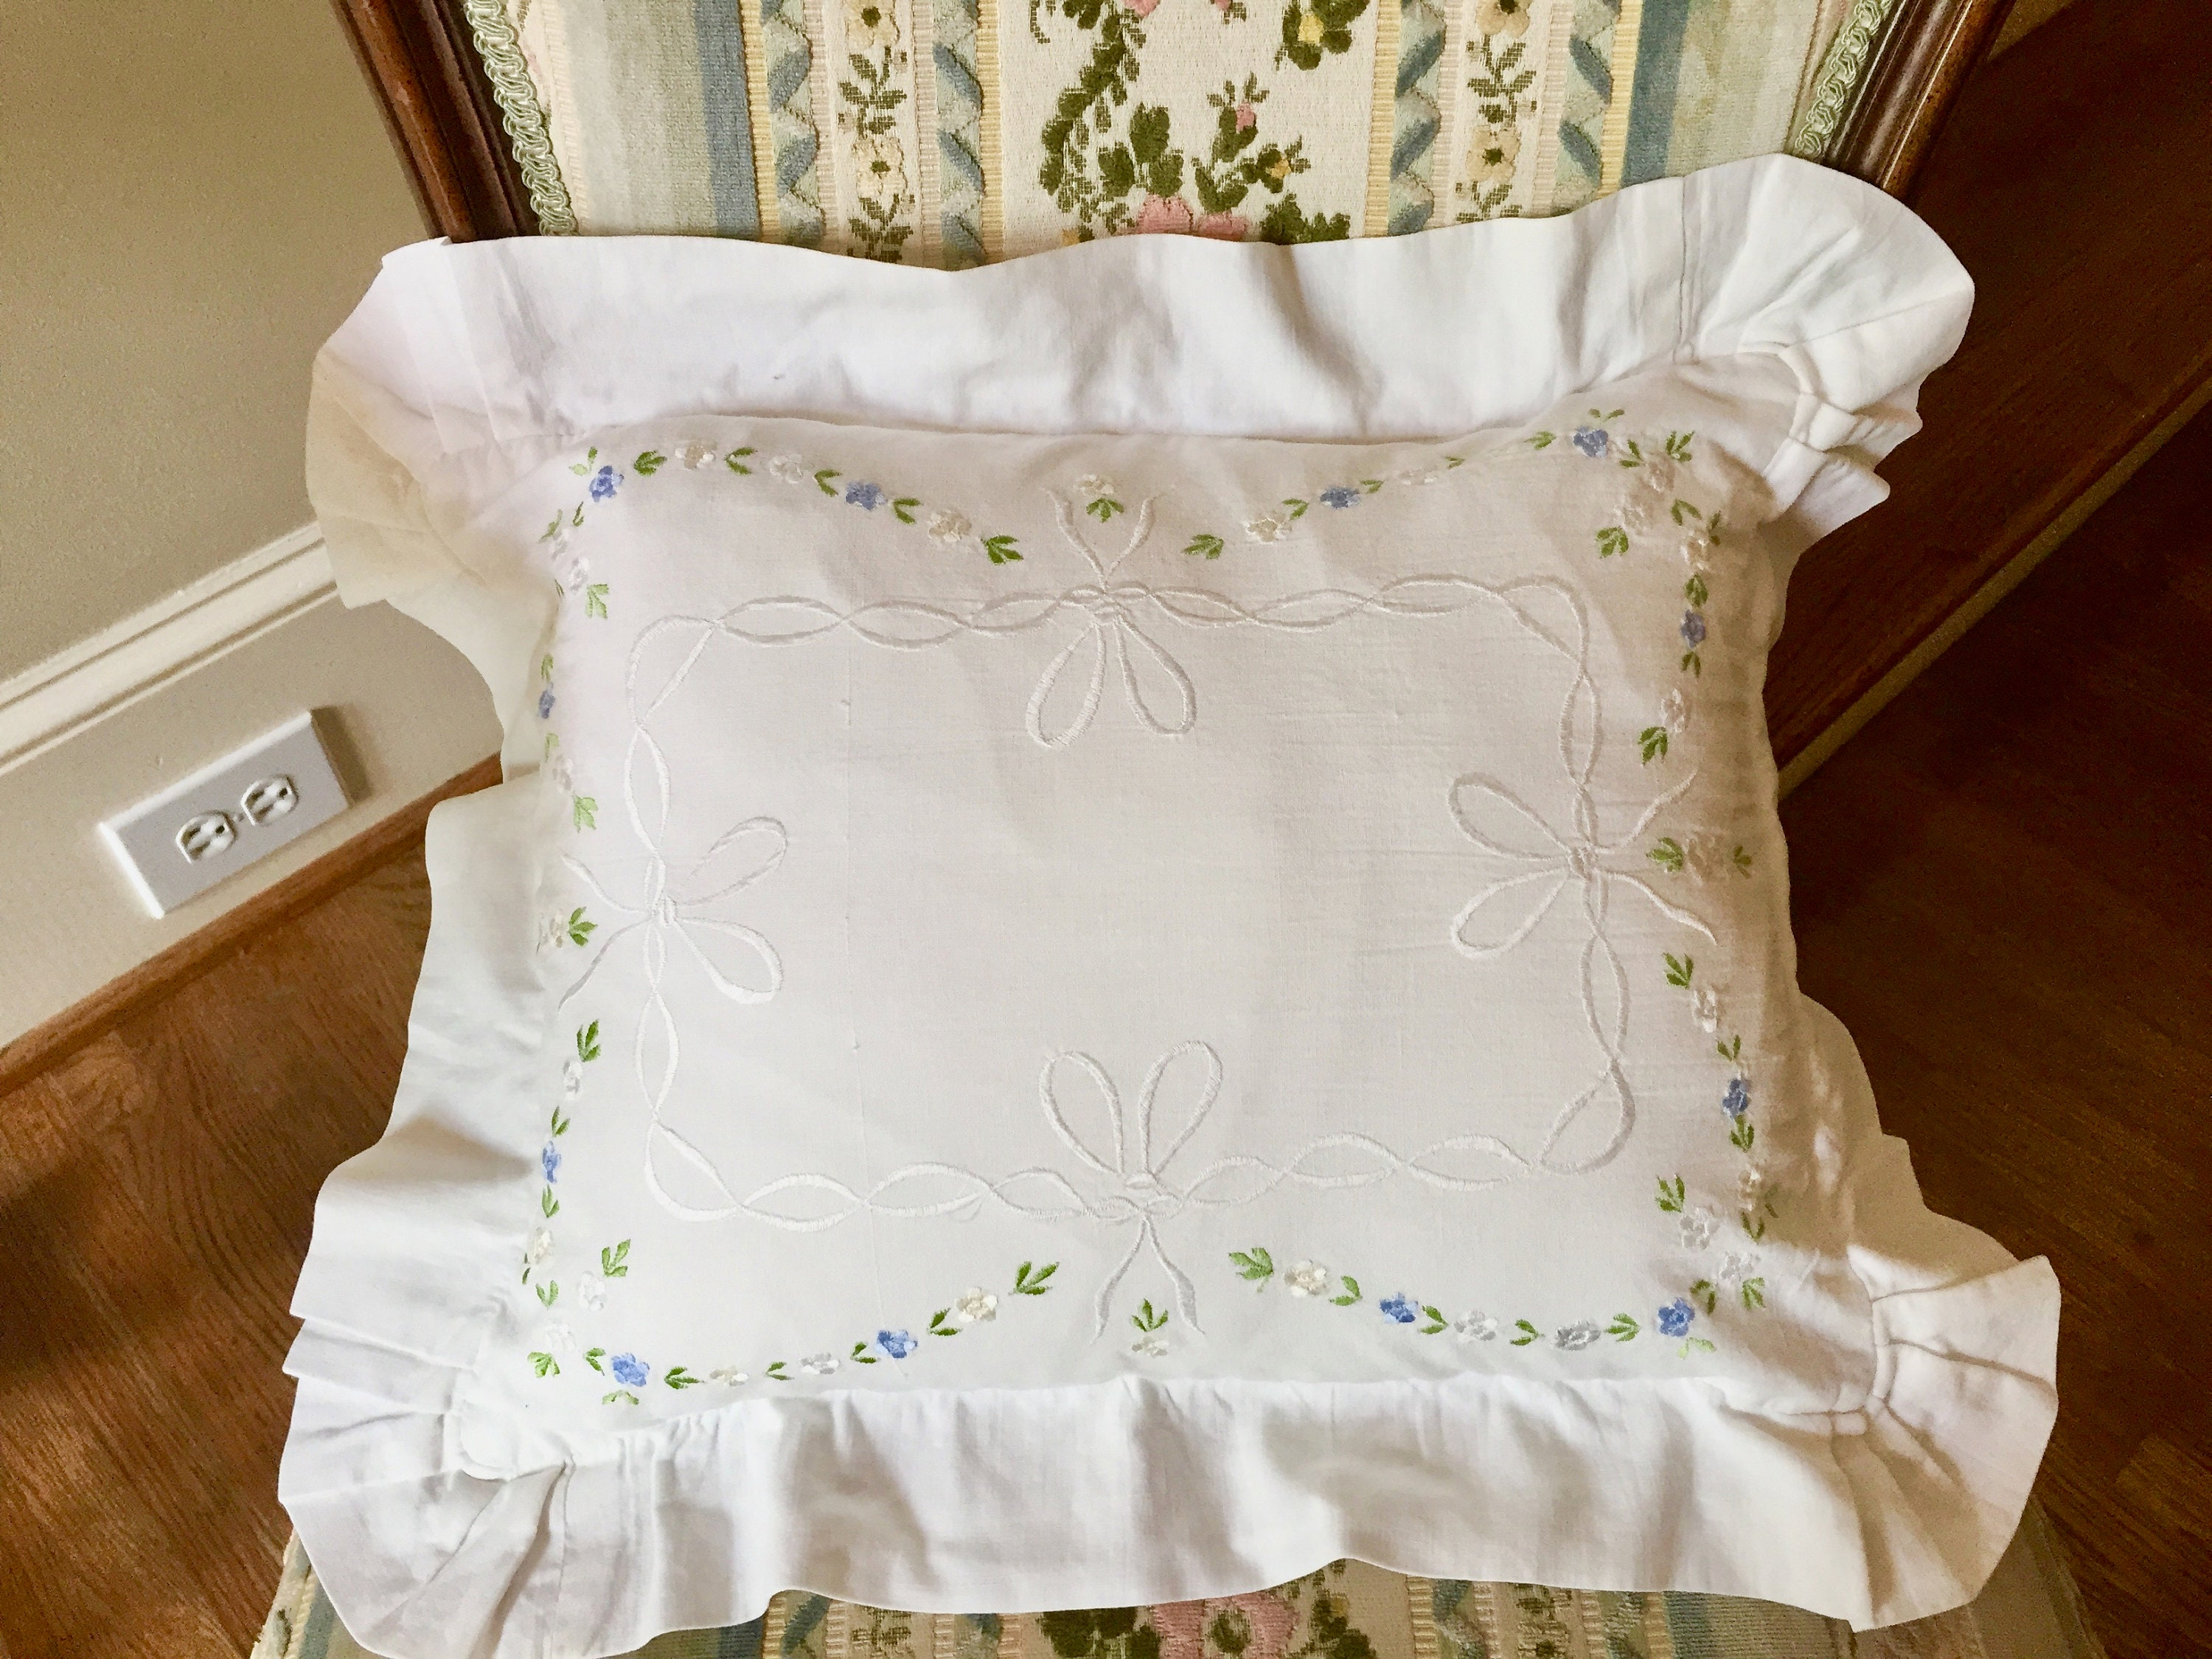 White Embroidered Pillow With Pillow Form Vintage Cottage Chic Farmhouse Decorative Pillow Blue Green Floral Embroidery French Cottage